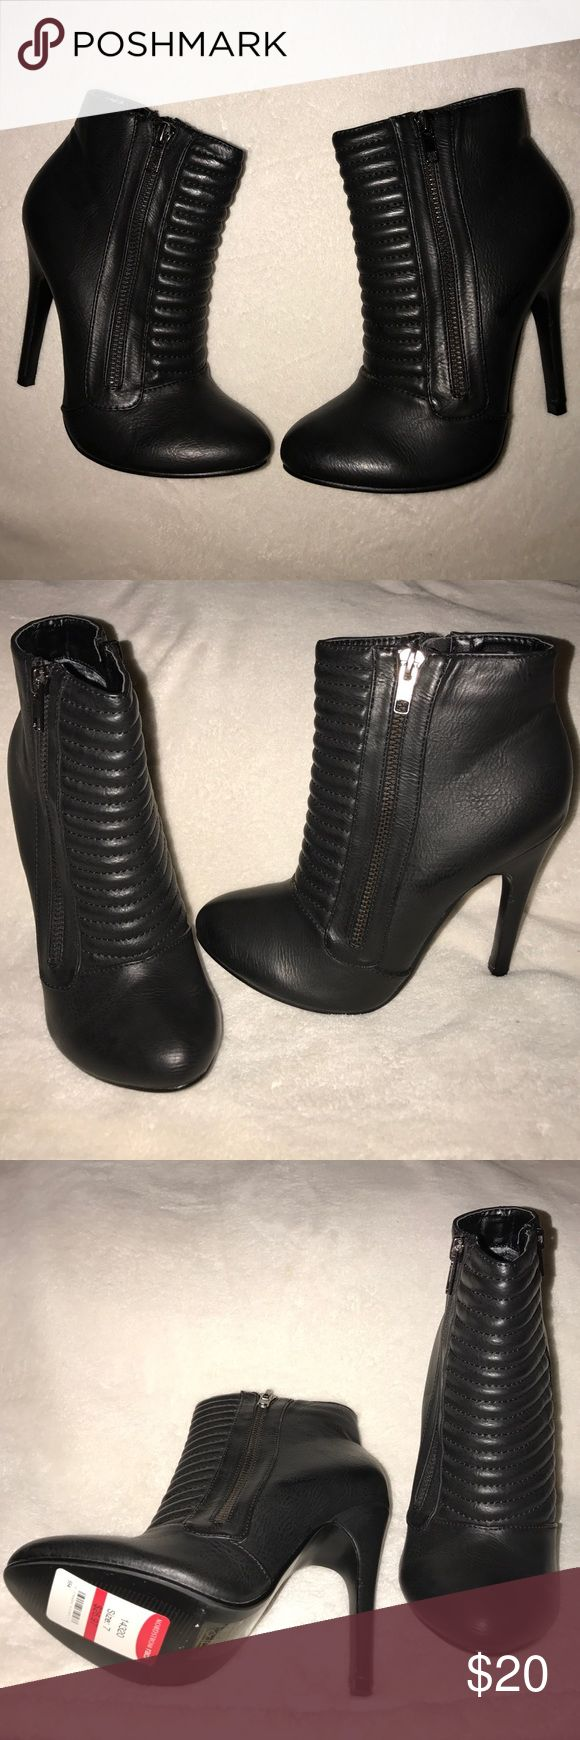 Size 7 Women's Armani Exchange New York Booties NWT size 7 Armani Exchange New York booties. Black in color with 4.5inch heels. Bought at Nordstrom Rack. Armani Exchange New York Shoes Ankle Boots & Booties